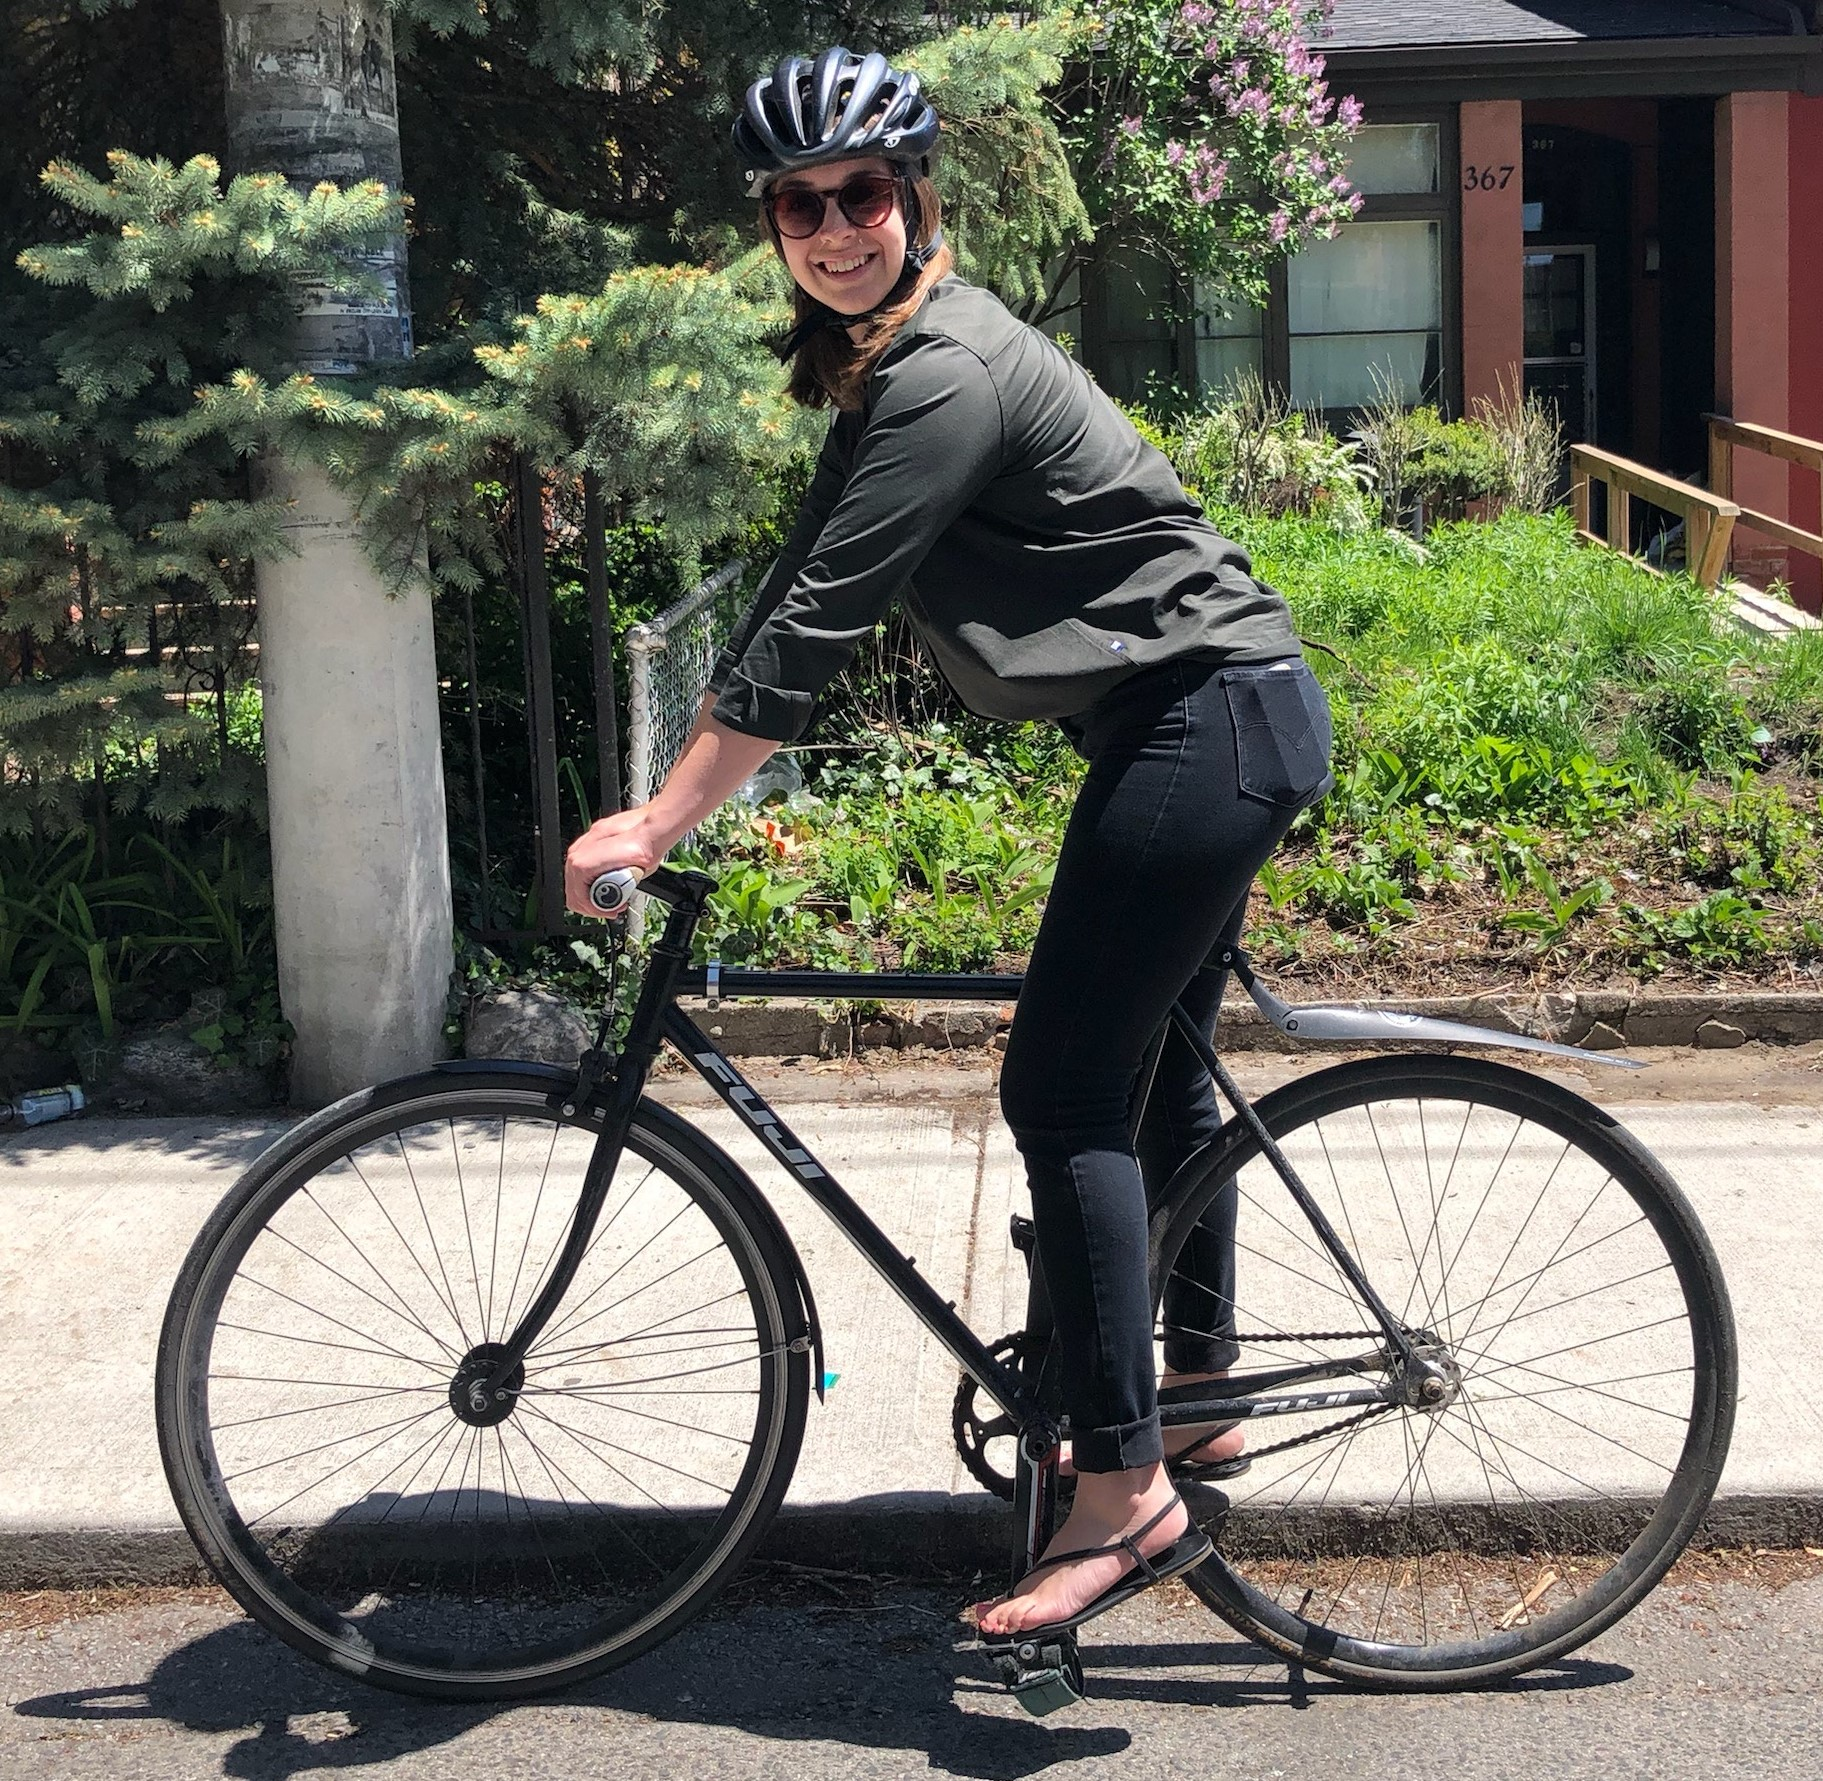 A woman sits on her bike seat. Her leg is slightly bent with the pedal all the way at the bottom.